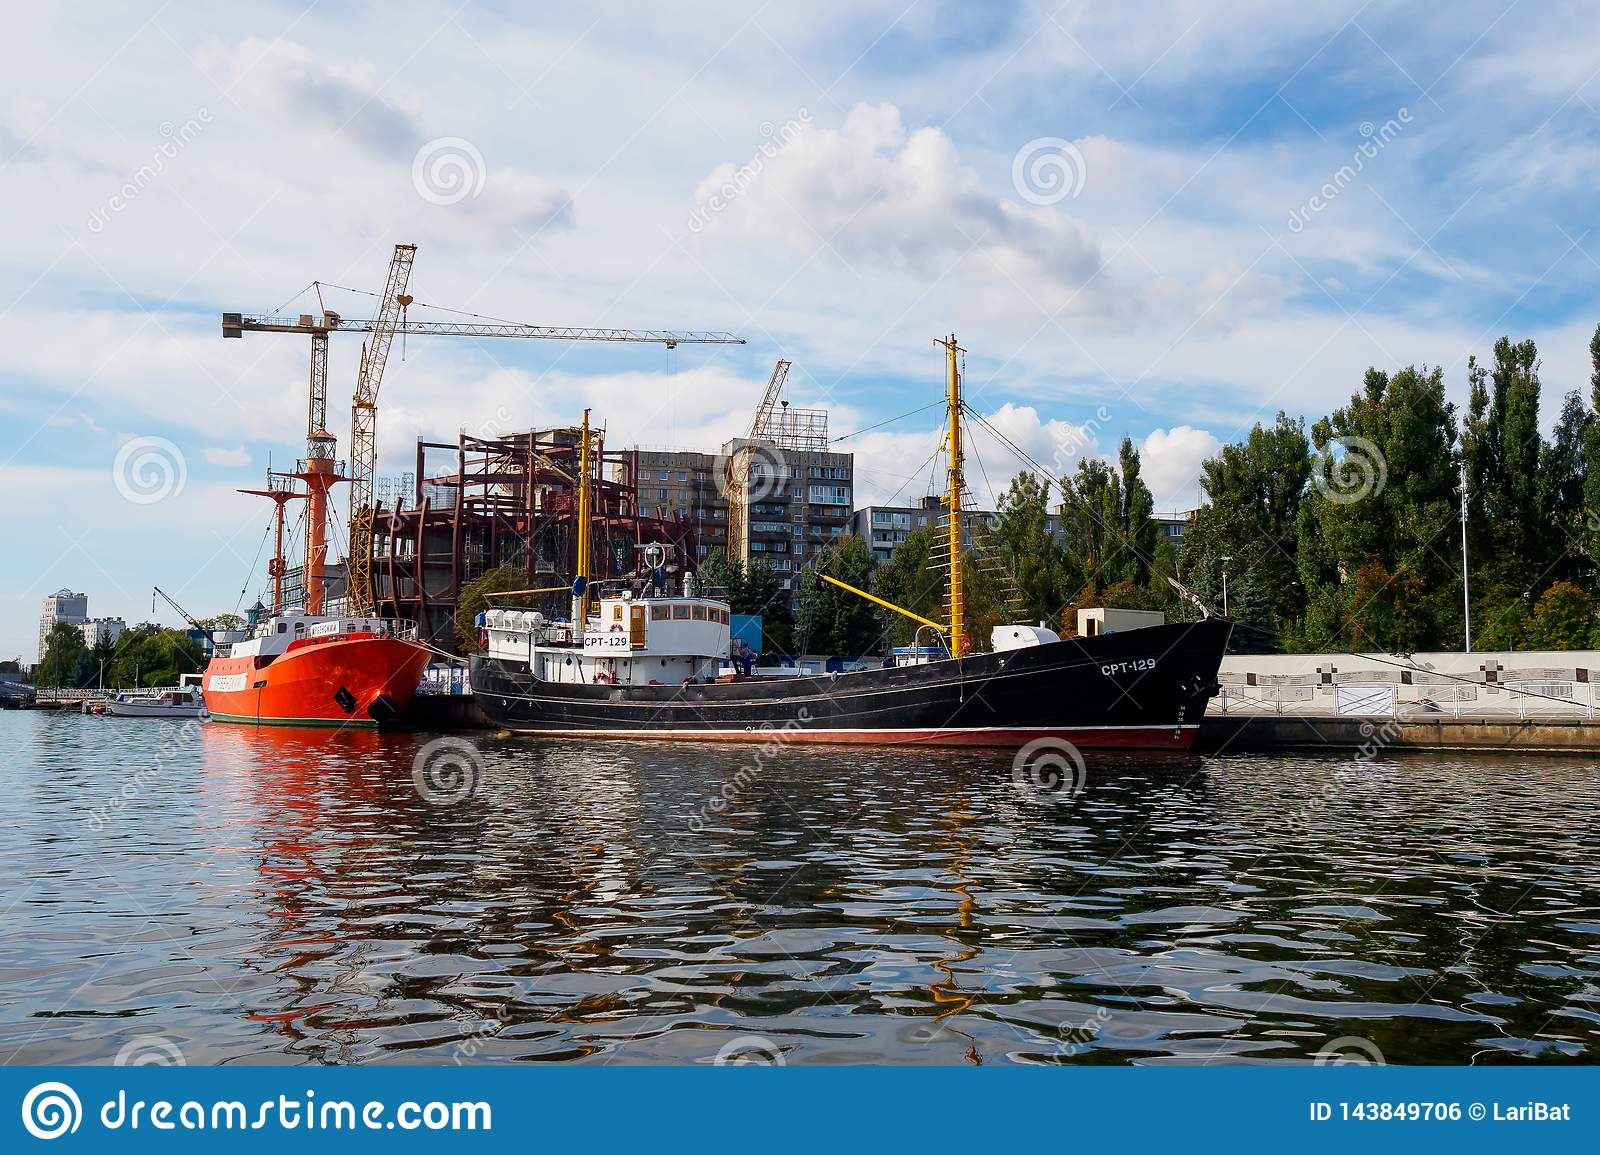 Kaliningrad, Russia - September 10, 2018: Exhibits of the Museum of the World Ocean at the pier against the background of the